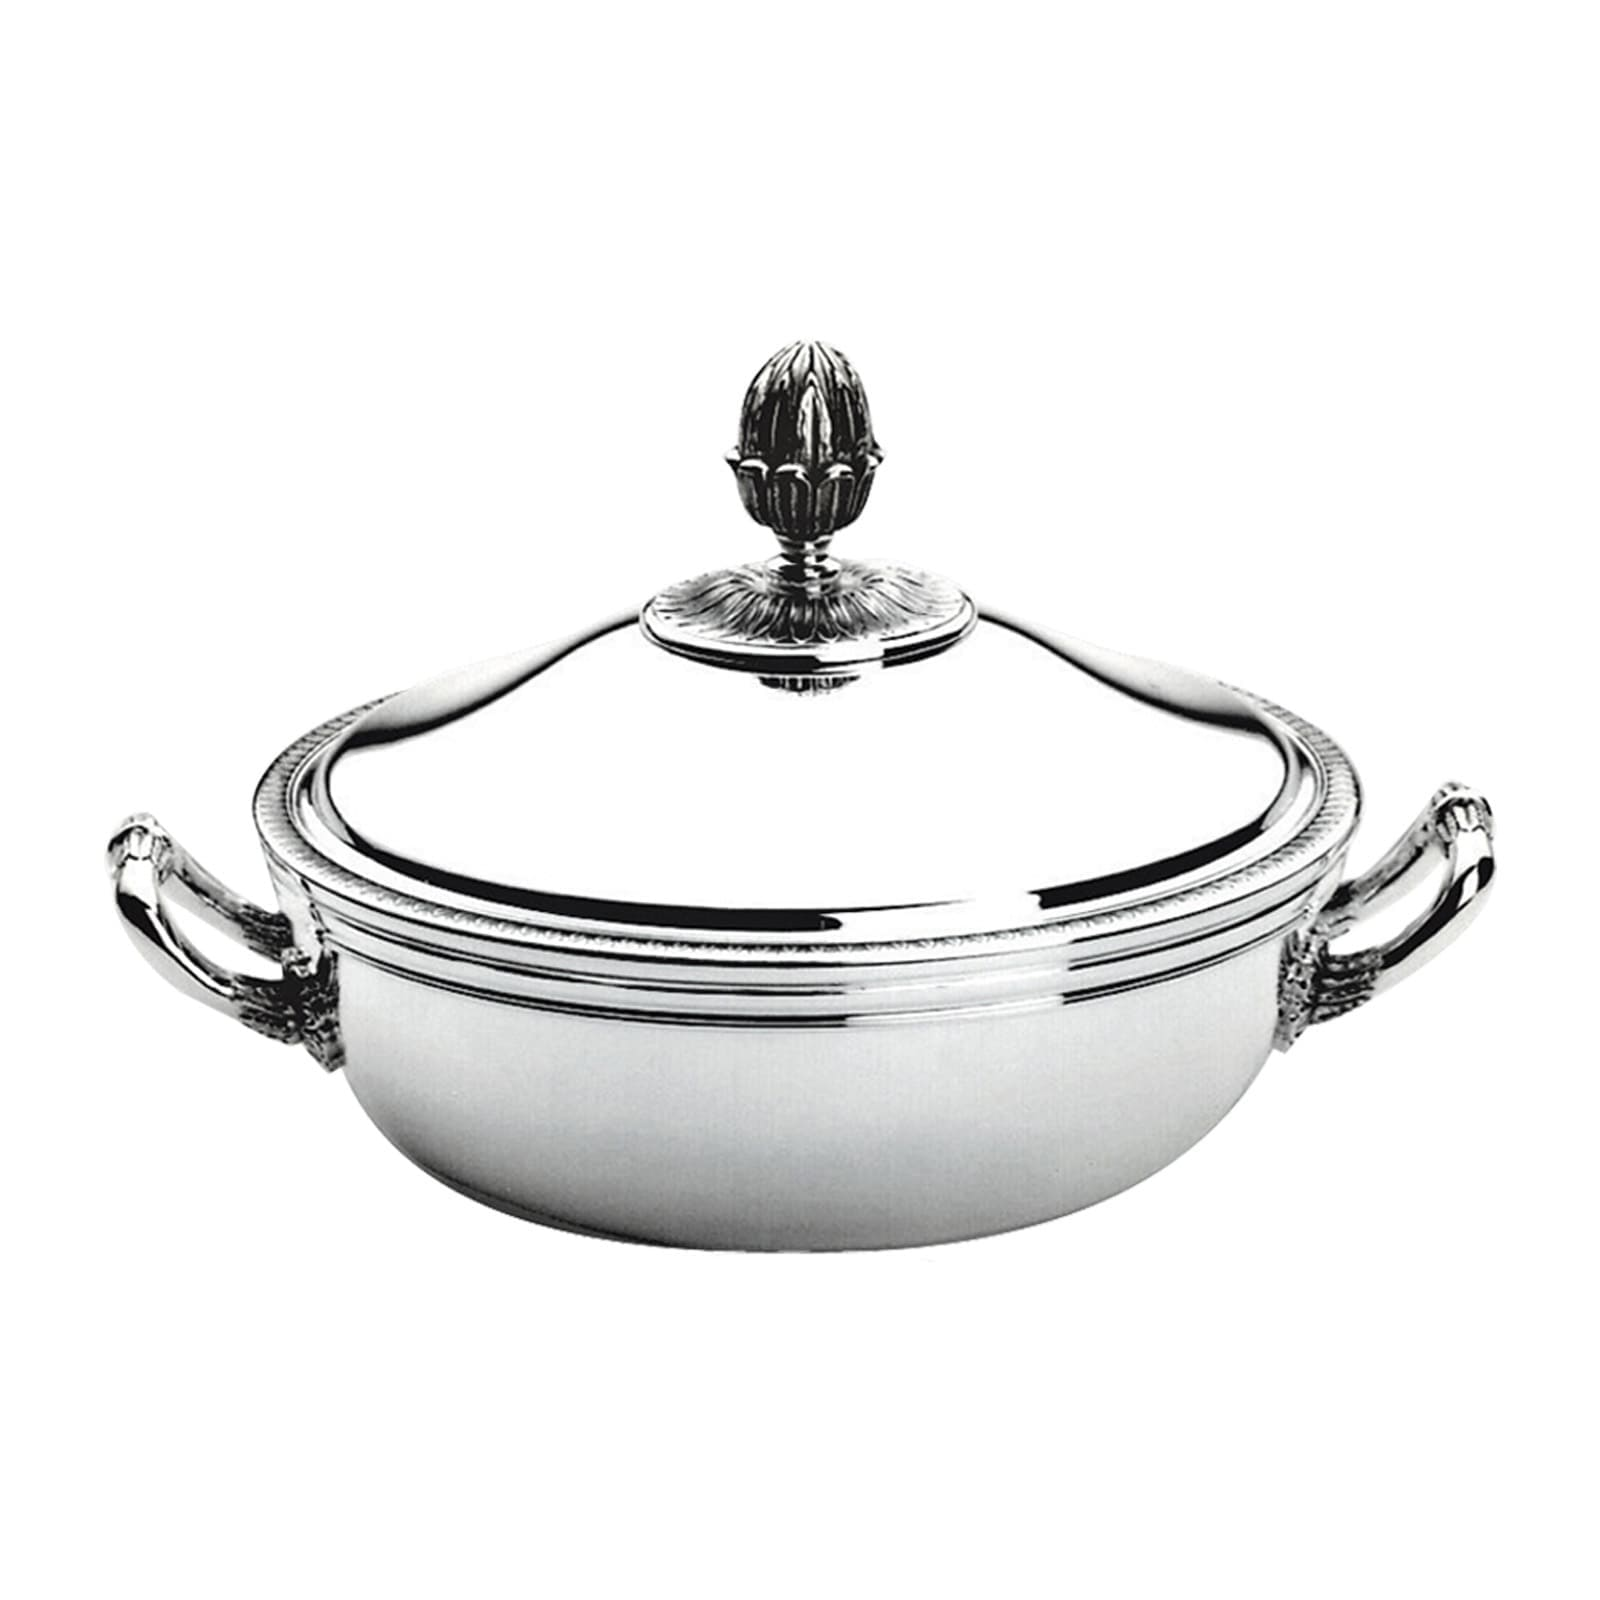 Christofle Malmaison Silver Plated Vegetable Dish with Lid